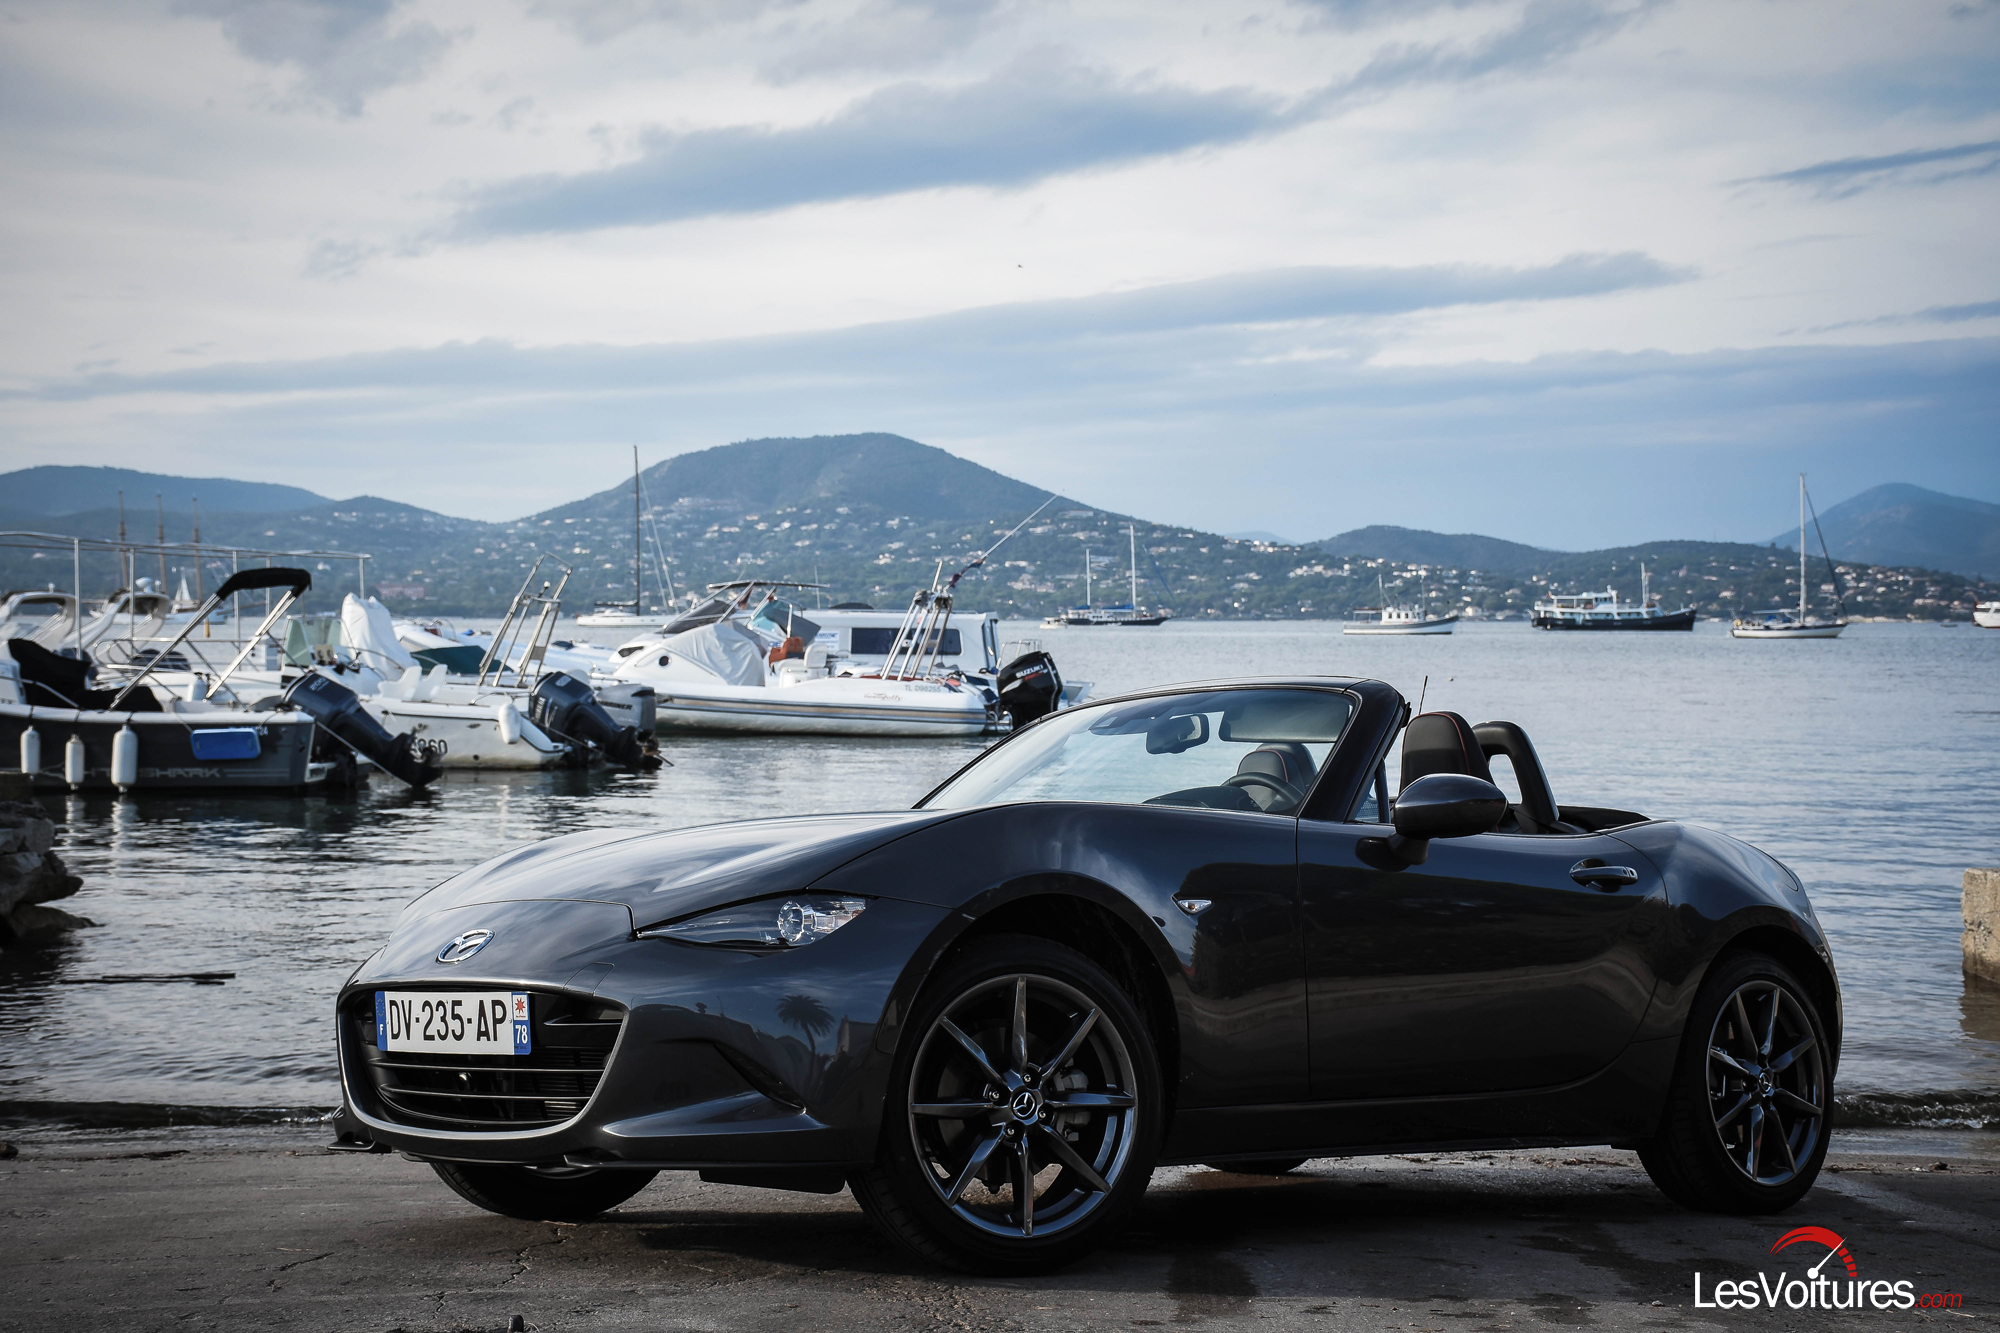 essai test drive mazda mx5 miata 12 les voitures. Black Bedroom Furniture Sets. Home Design Ideas